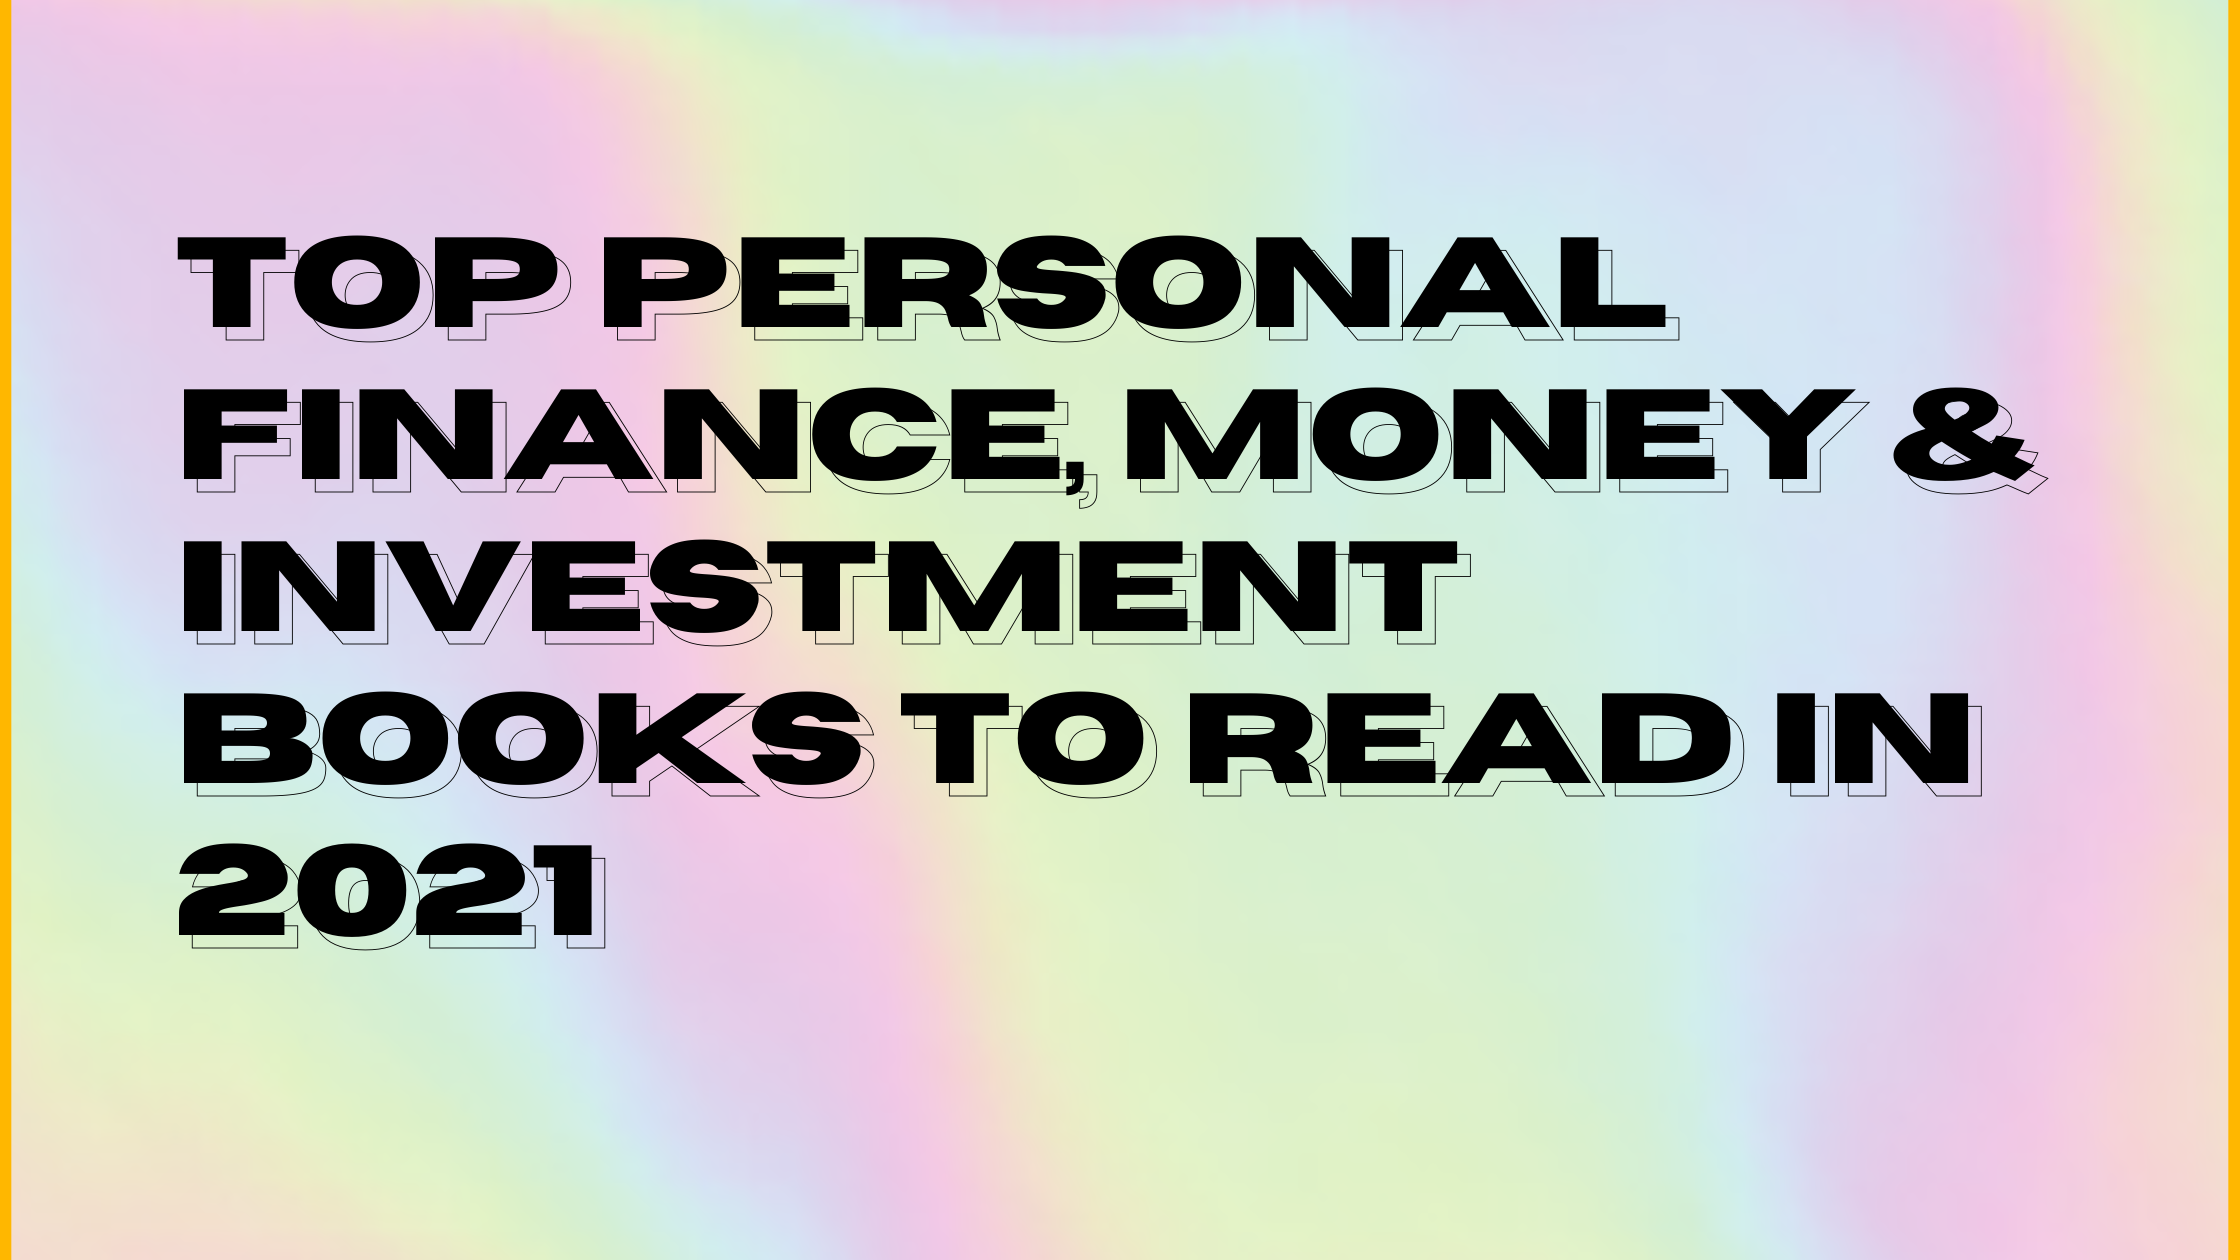 TOP PERSONAL FINANCE, MONEY & INVESTMENT BOOKS TO READ IN 2021